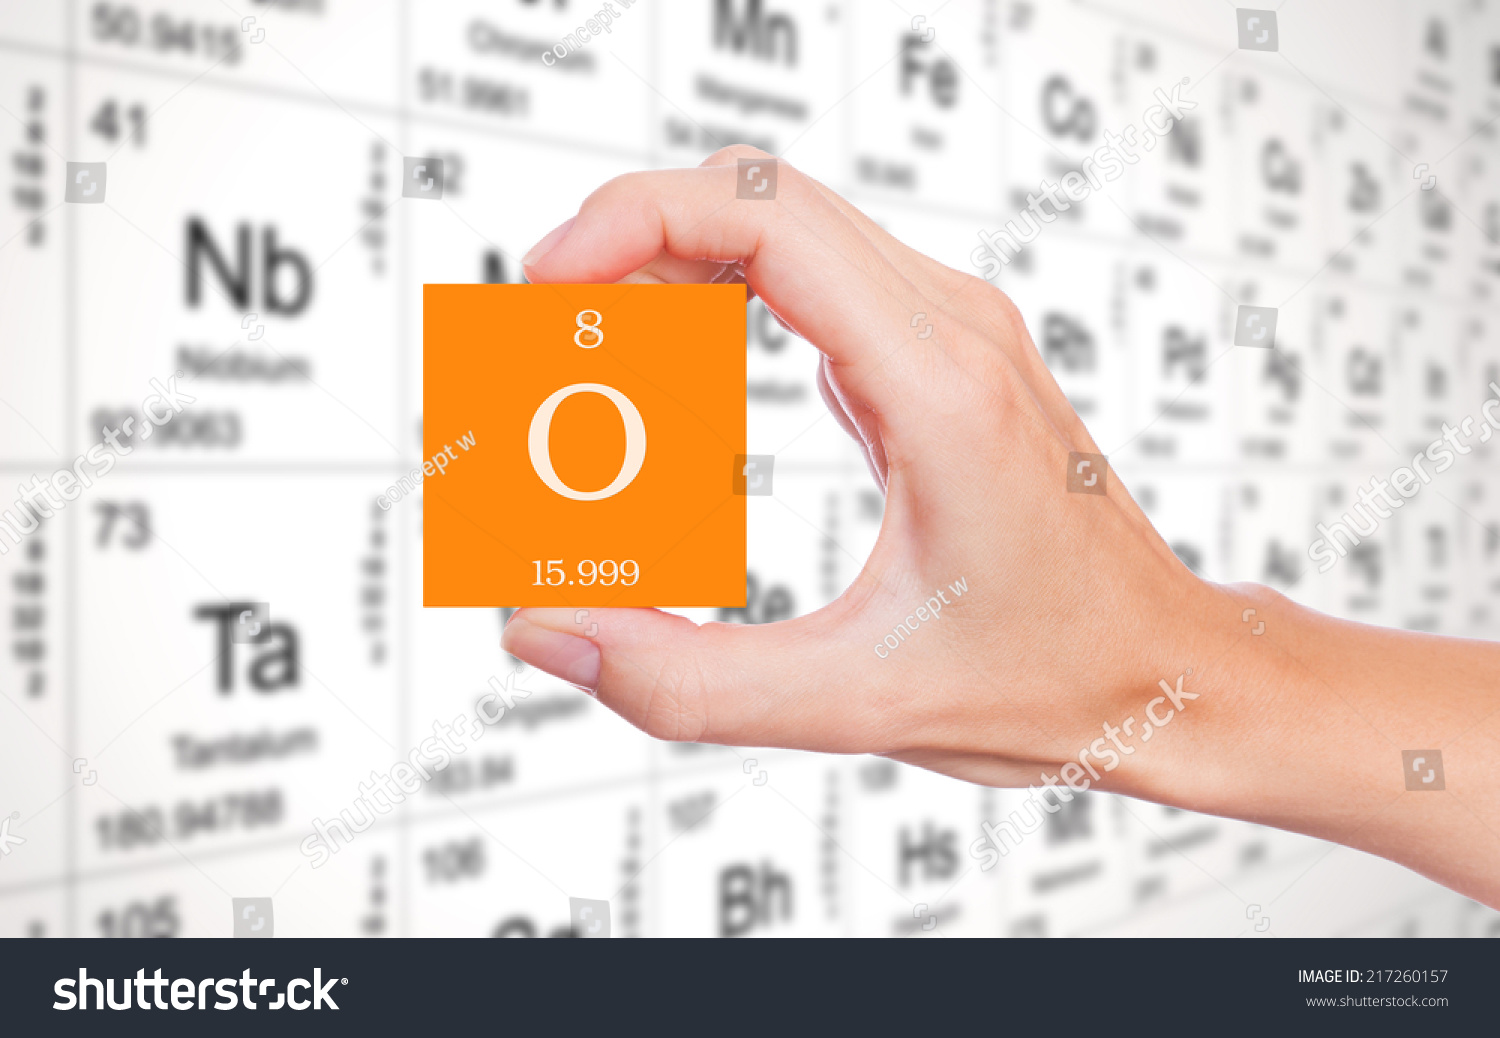 Oxygen periodic table symbol choice image periodic table images oxygen symbol periodic table choice auto ac wiring diagrams the oxygen symbol periodic table choice image gamestrikefo Images